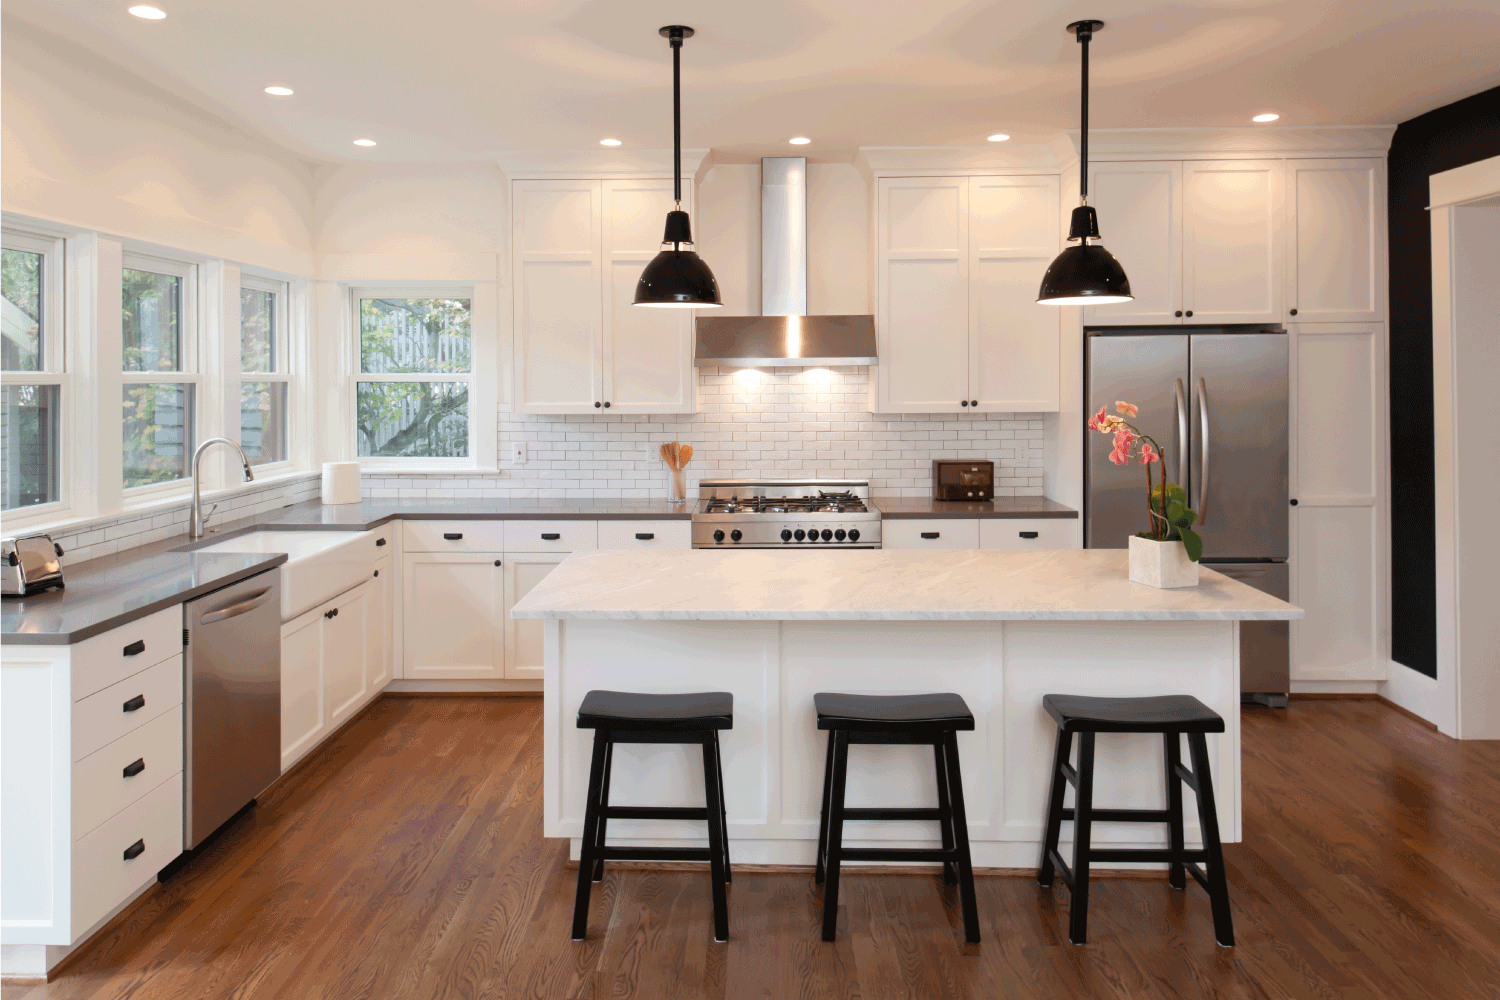 Beautiful, new kitchen in luxury home. different color floor and countertop